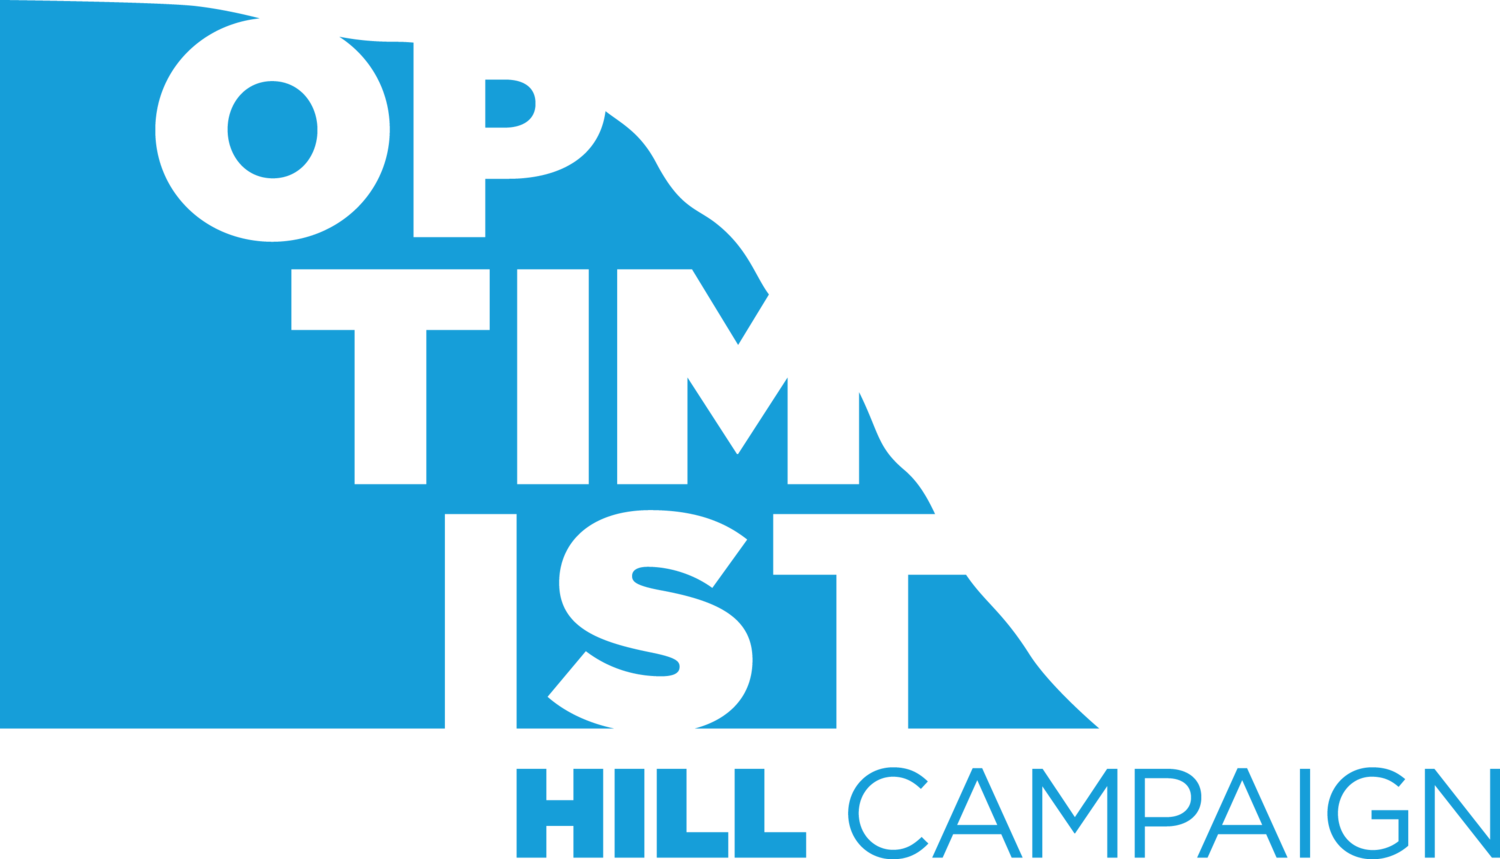 Optimist Hill Campaign